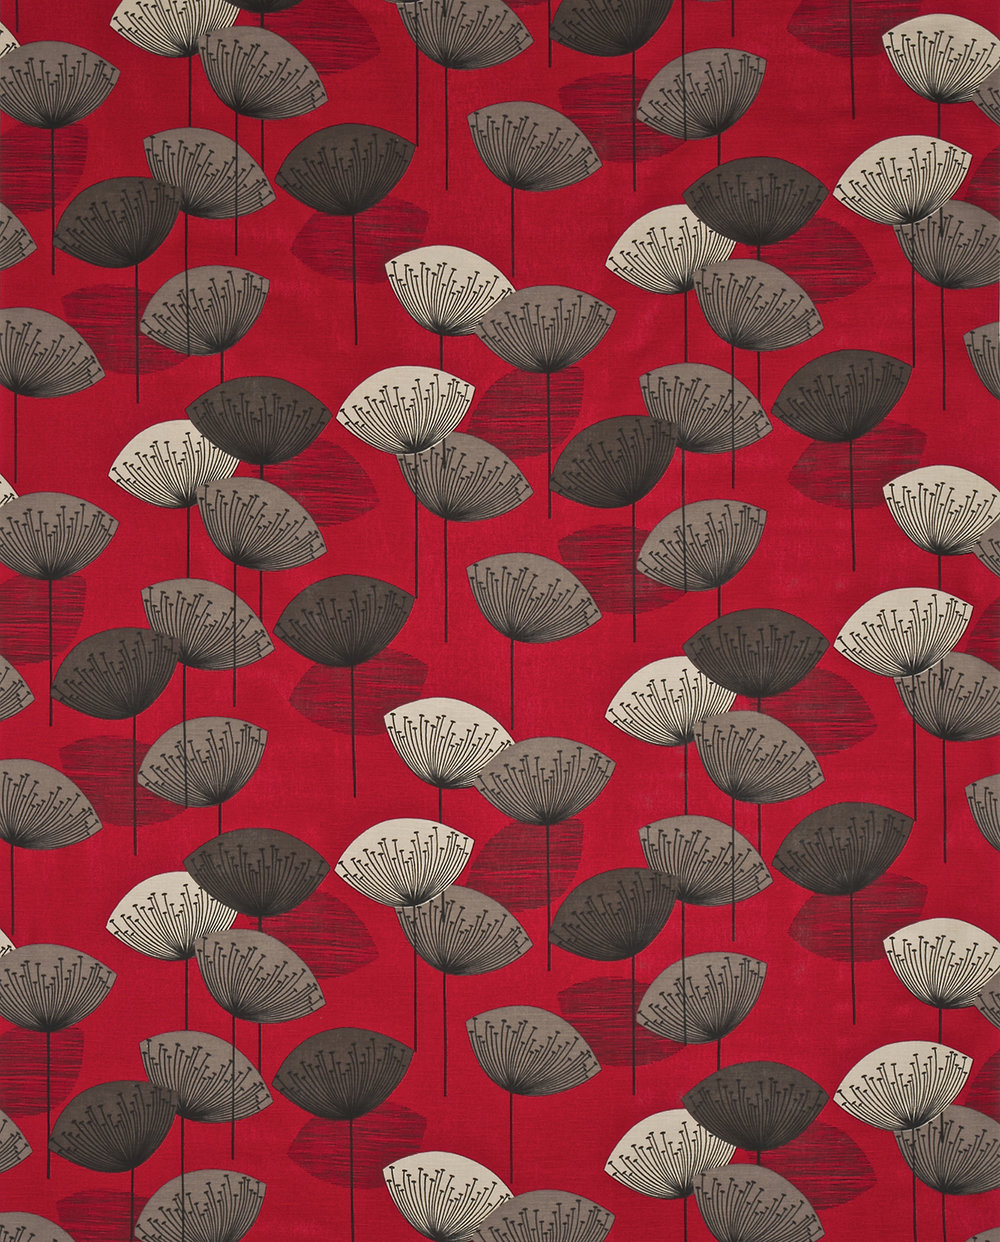 Dandelion clocks by sanderson red wallpaper direct for Wallpaper direct